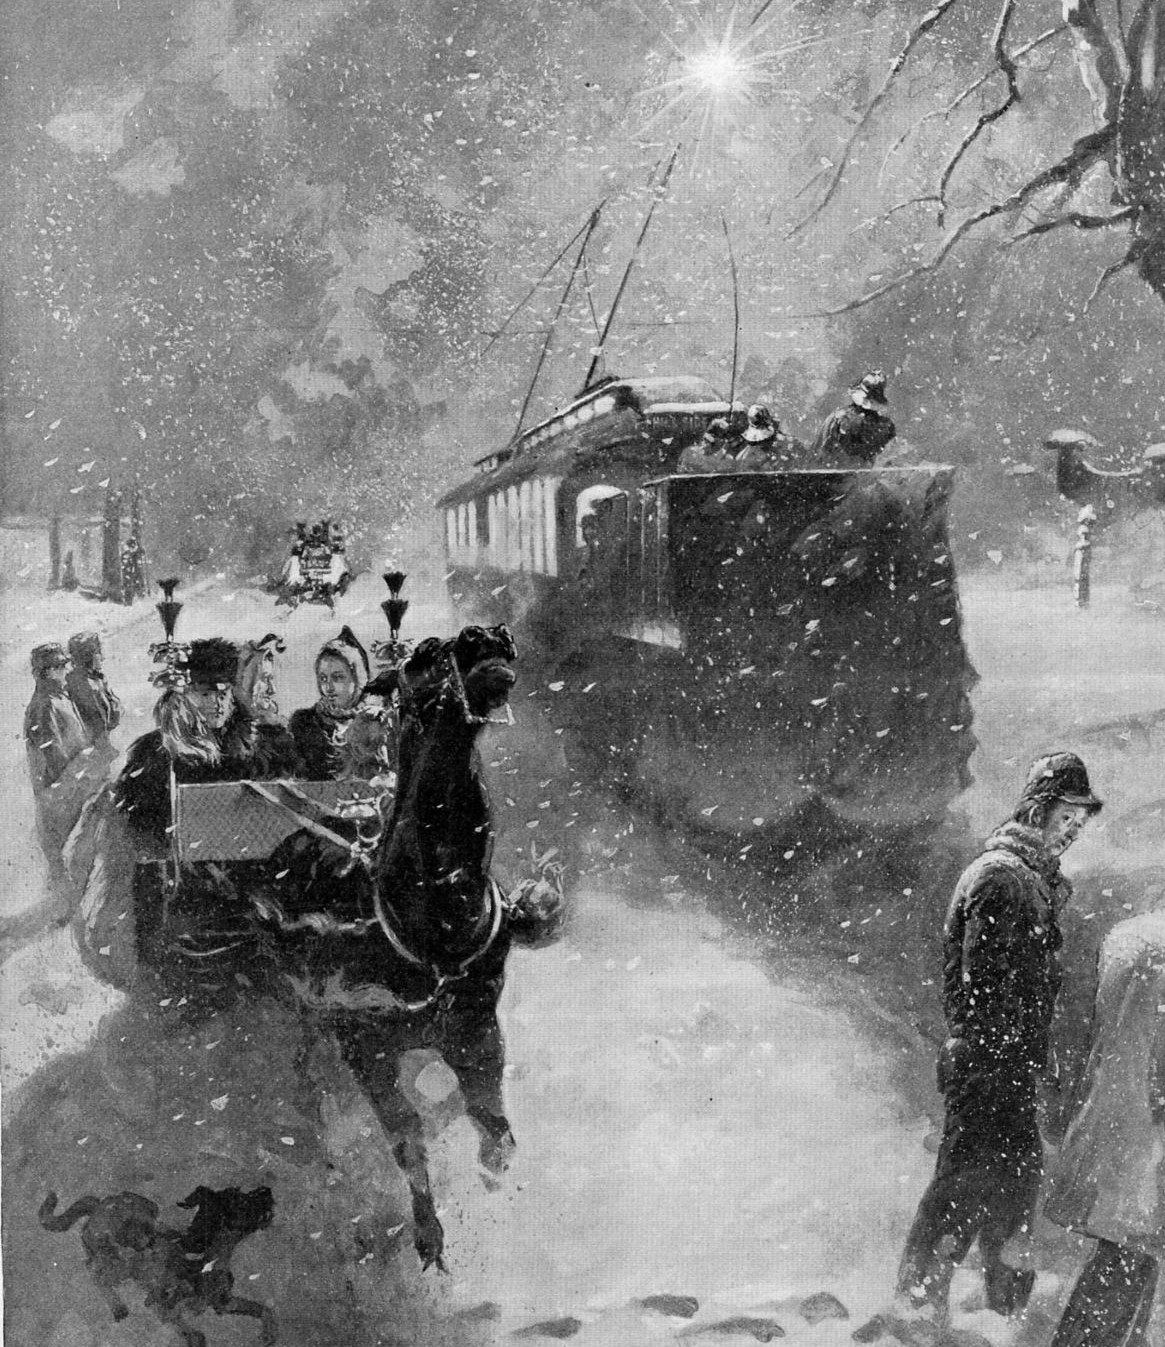 CLEARING SNOW BY ELECTRICITY TROLLY LINE SWEEPER HORSES CARRIAGE SNOWSTORM